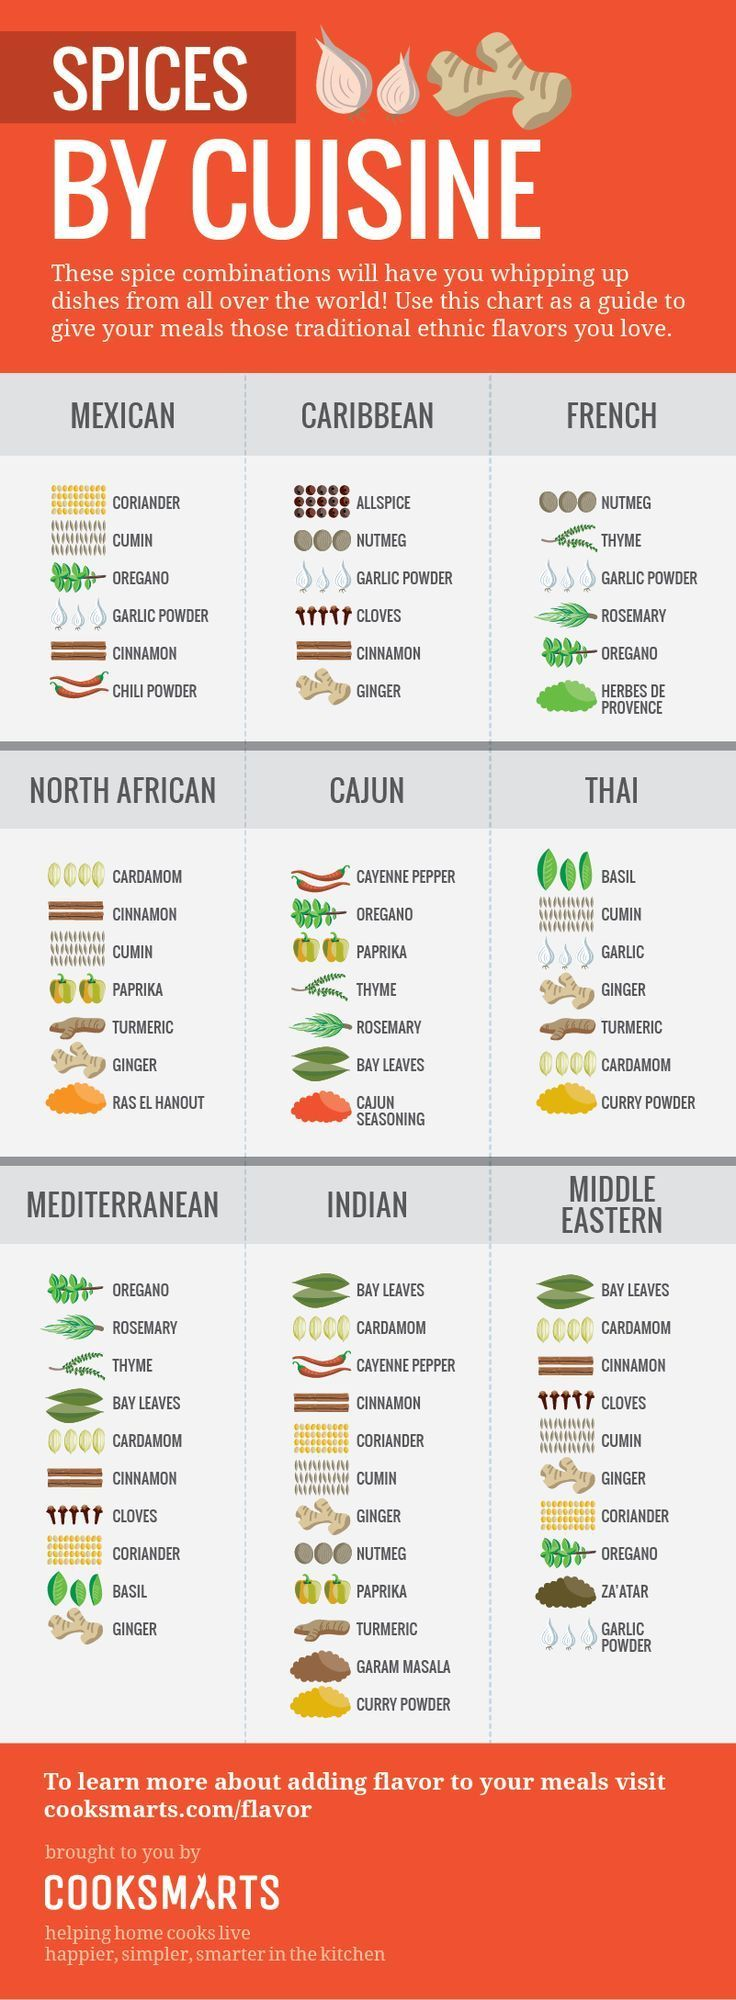 how to match the spice with the flavor ethnicity of cuisine you're cooking!